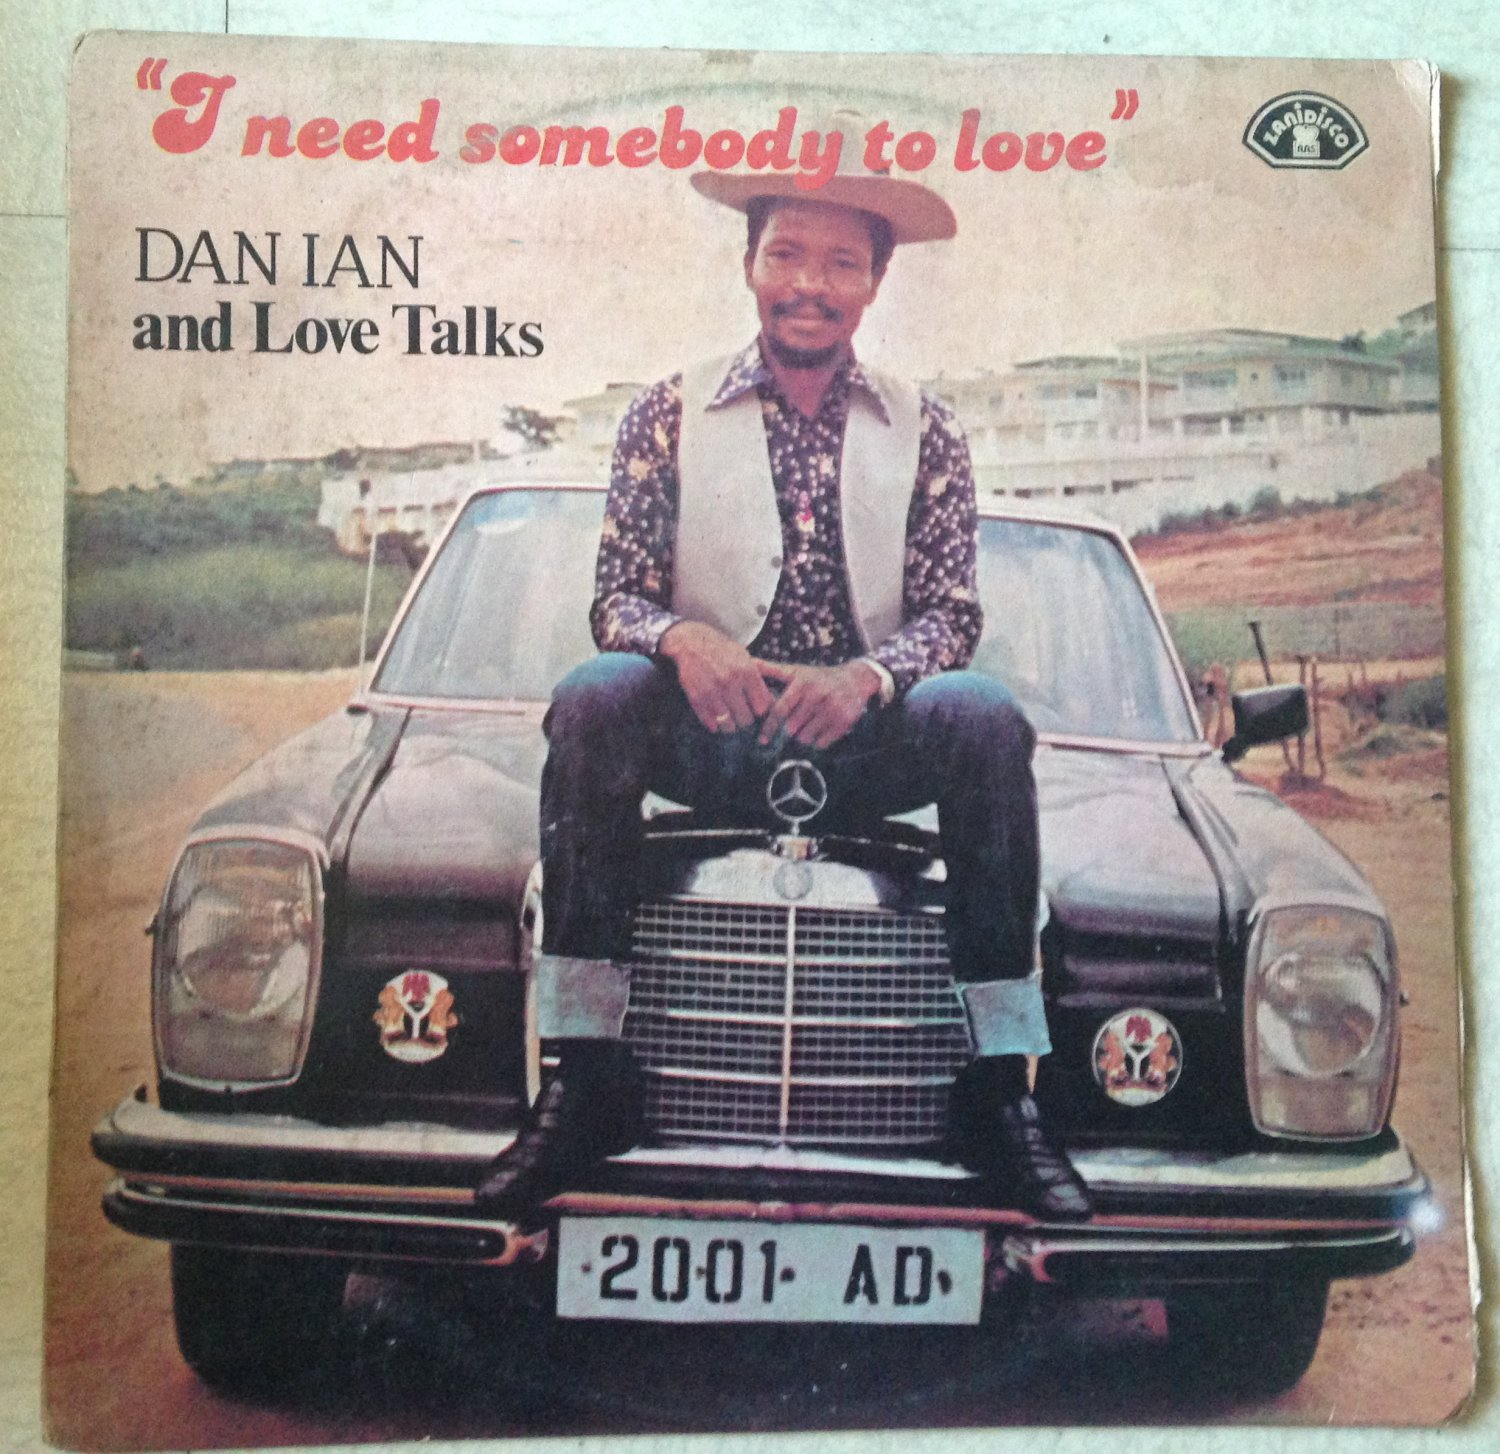 DAN IAN & THE LOVE TALKS LP i need somebody to love NIGERIA AFRO DISCO ZANIDISCO